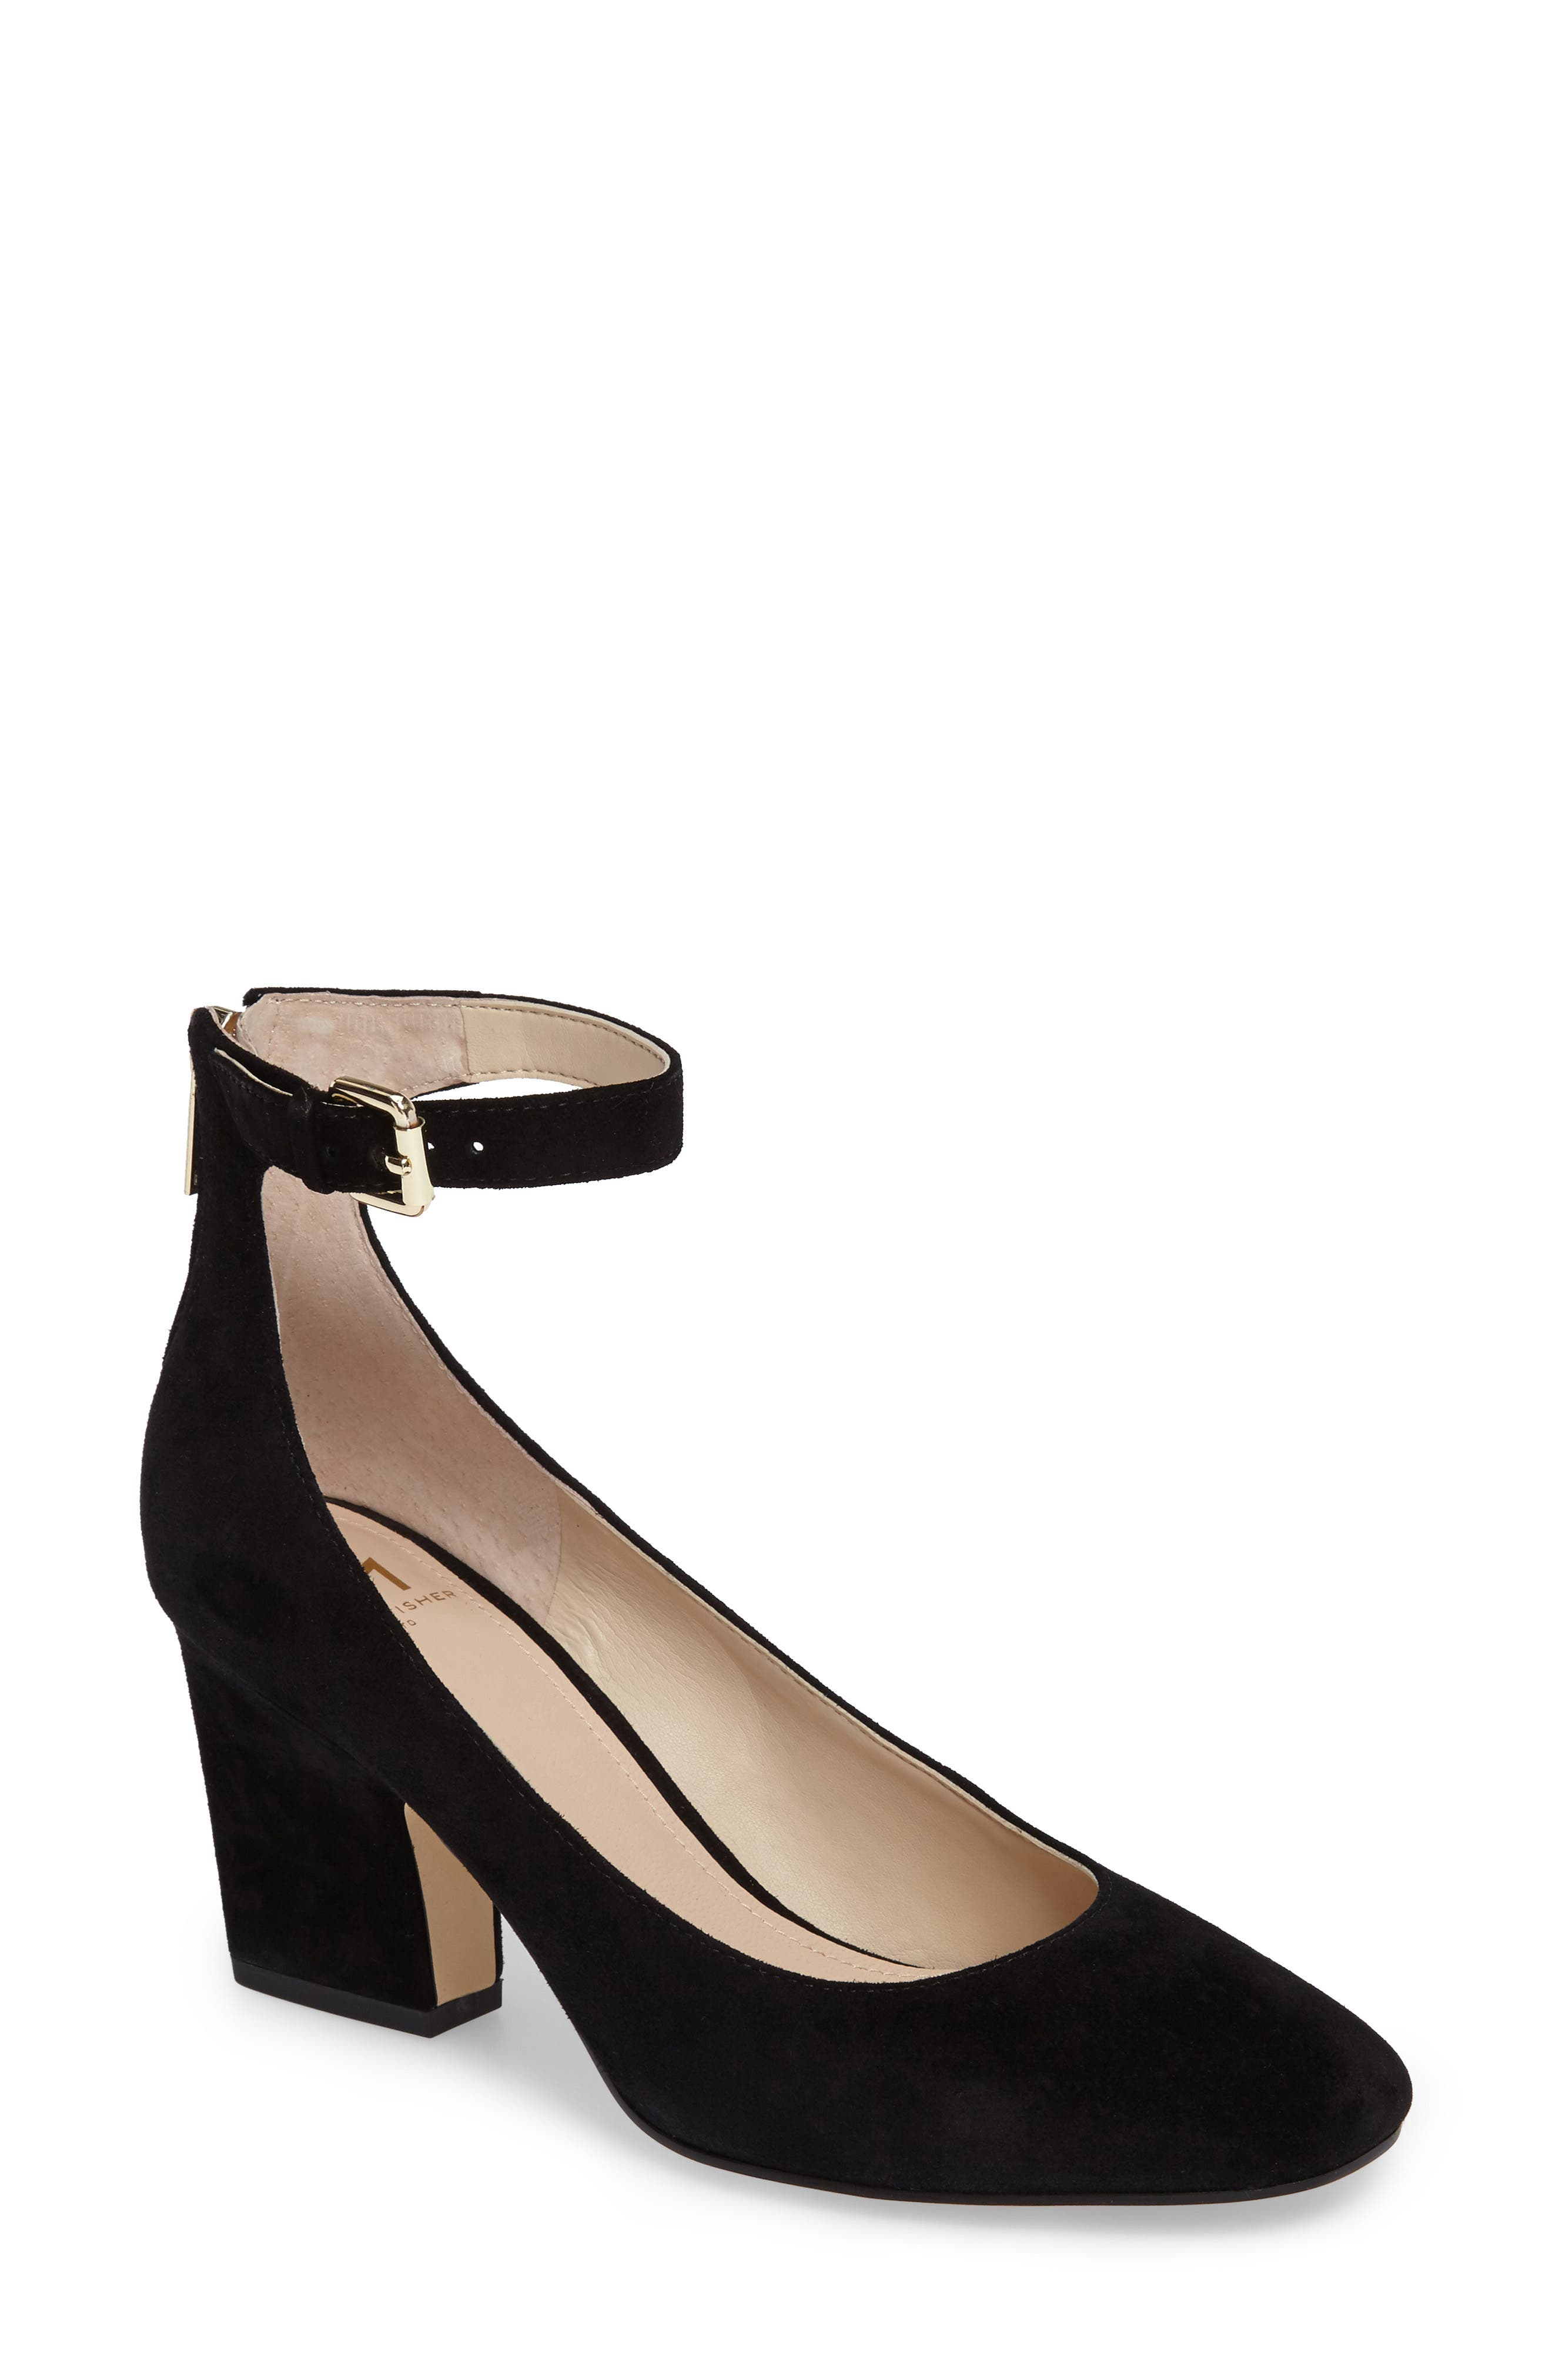 Anisy Ankle Strap Pump,                             Main thumbnail 1, color,